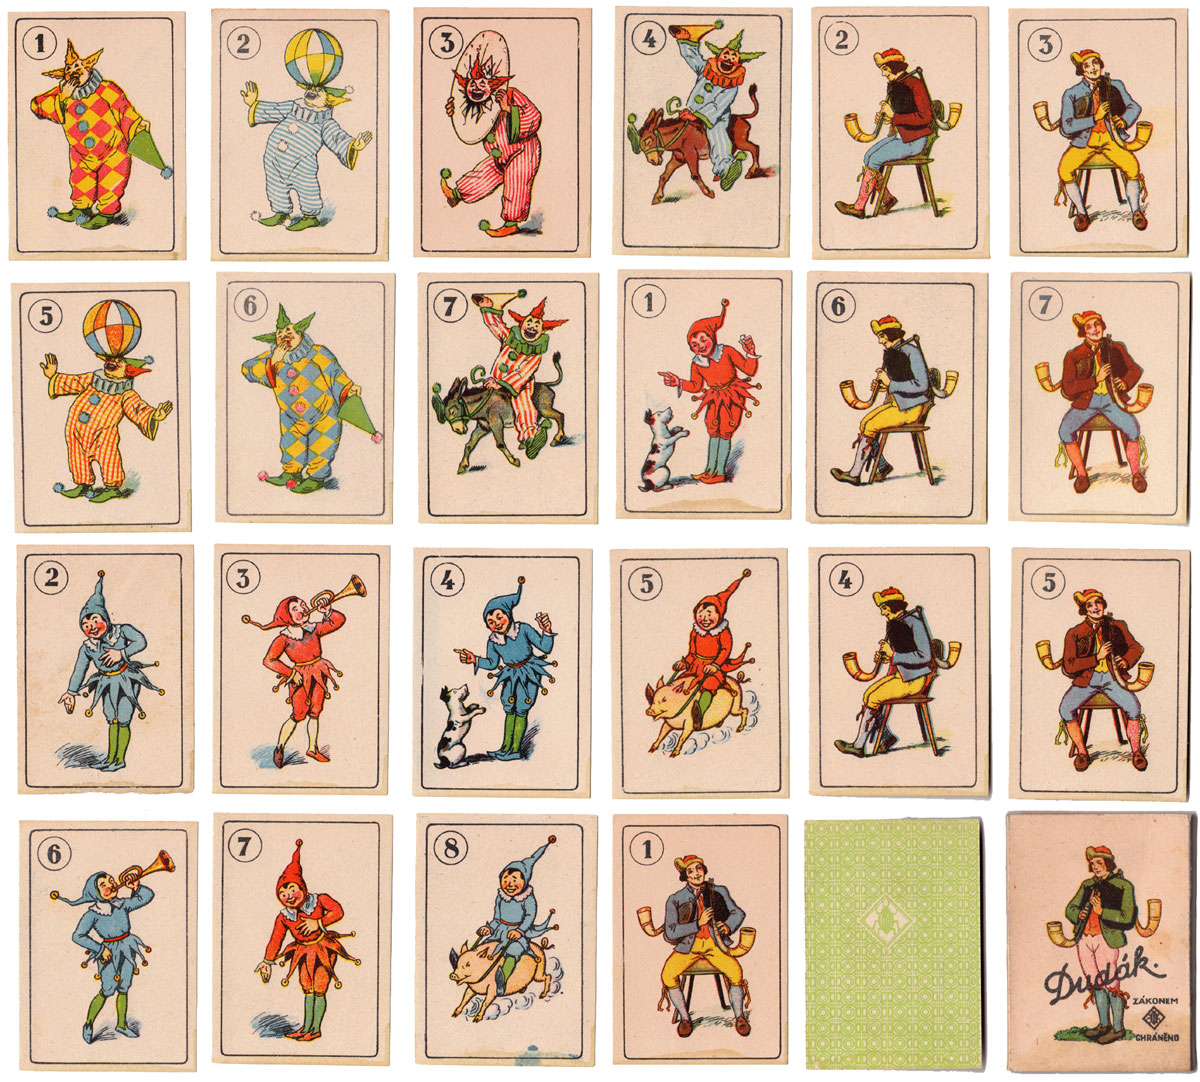 Dudák card game made in Czechoslovakia